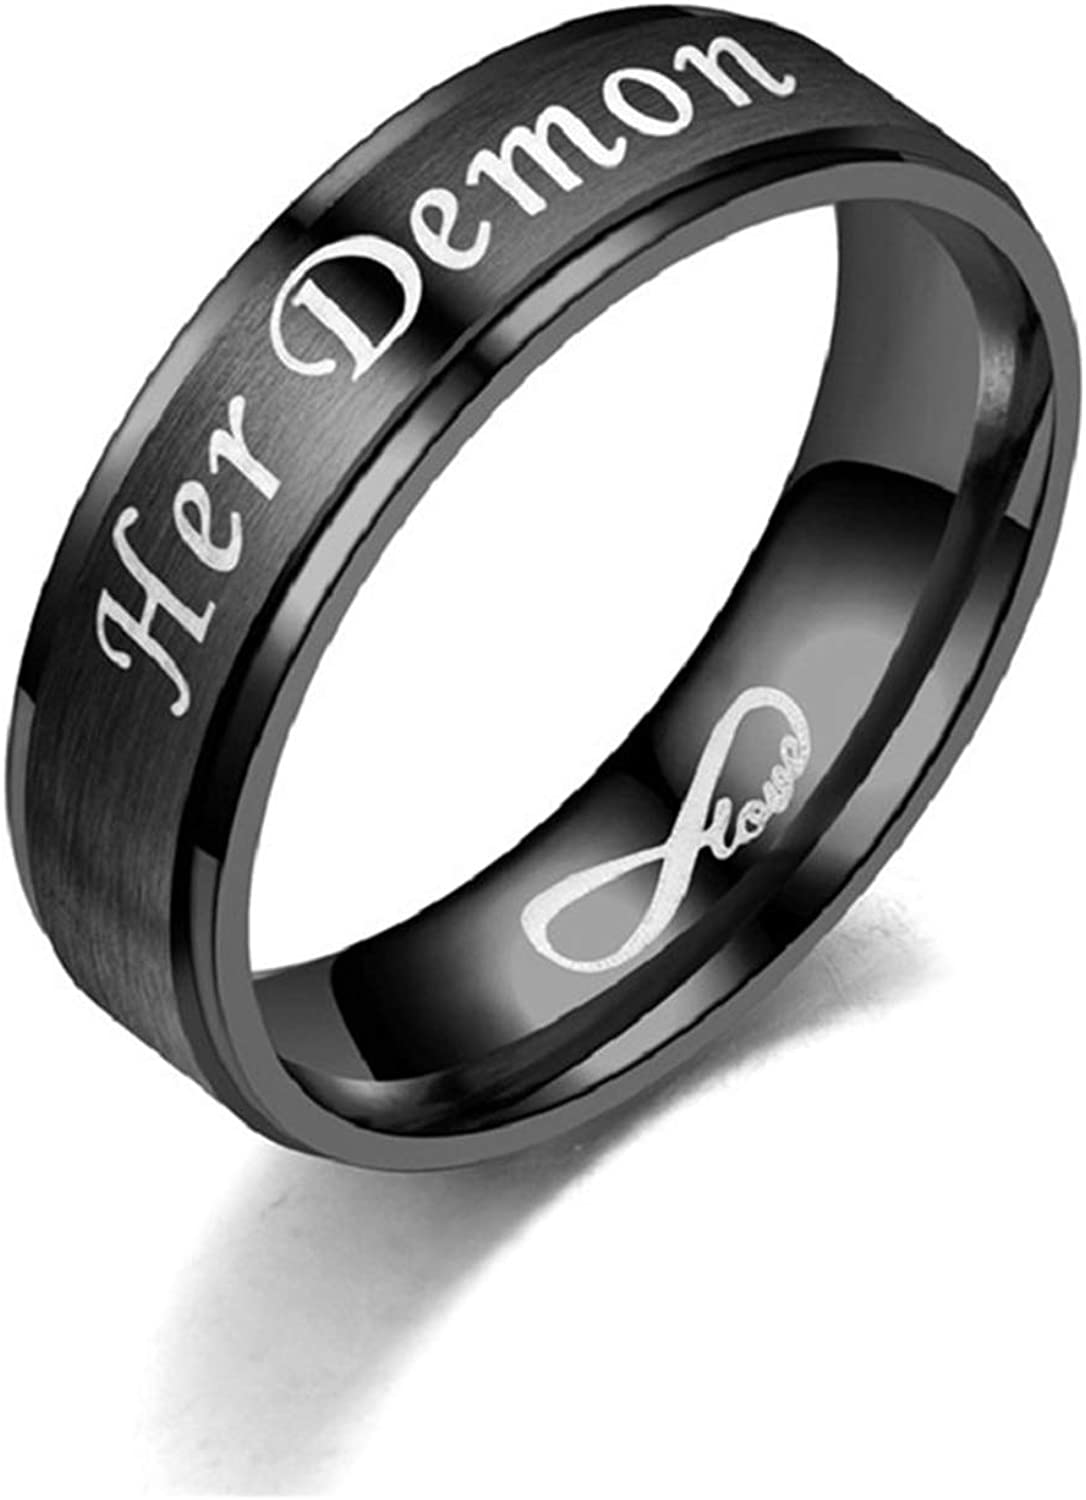 OIDEA His Angel,Her Demon Engraved Stainless Steel Couples Romantic Matching Ring Bands for Promise,Wedding, Size 6 to 12